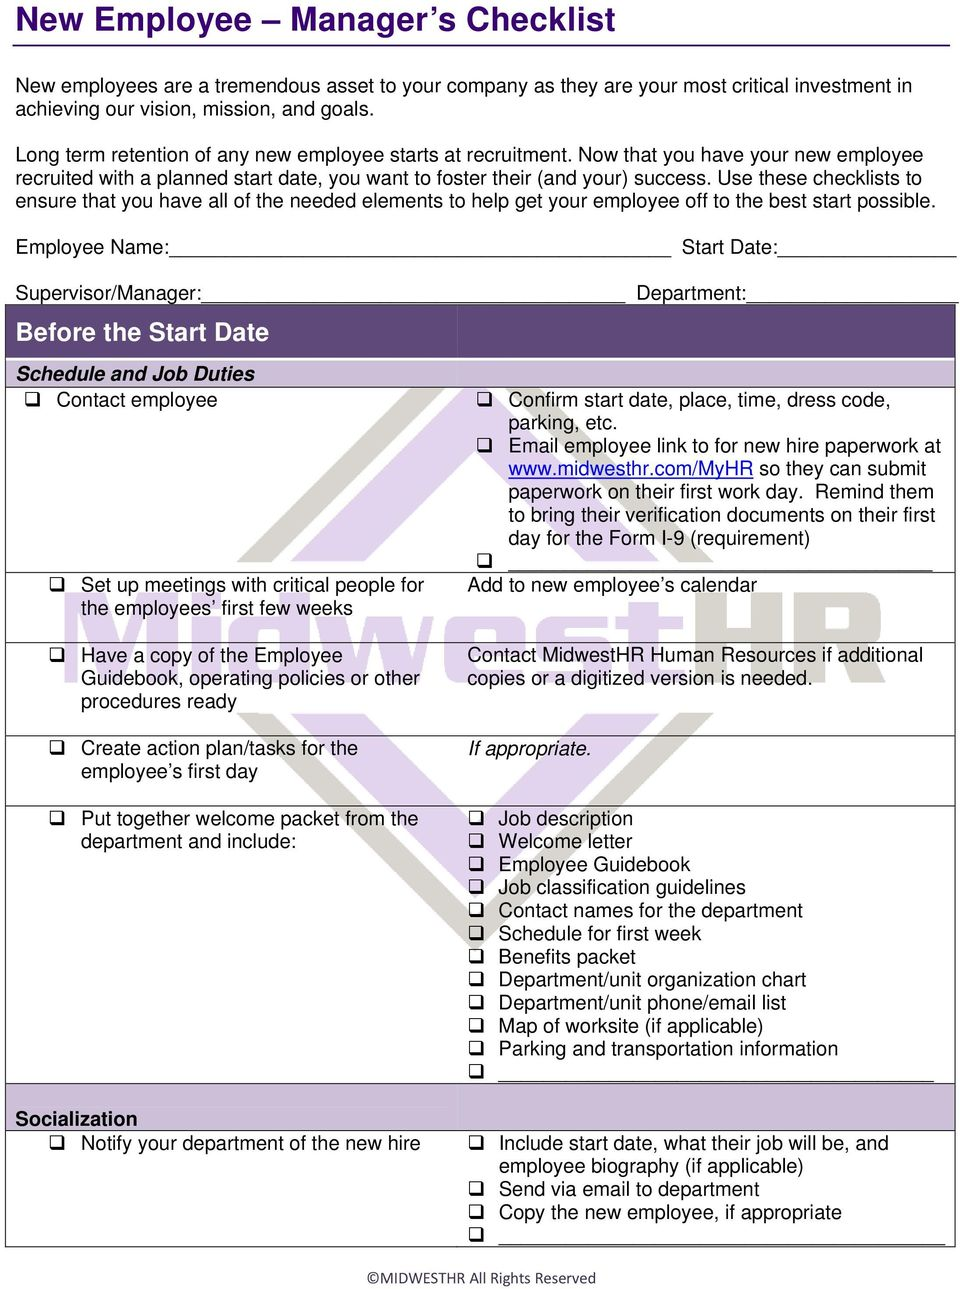 New Employee Manager s Checklist - PDF